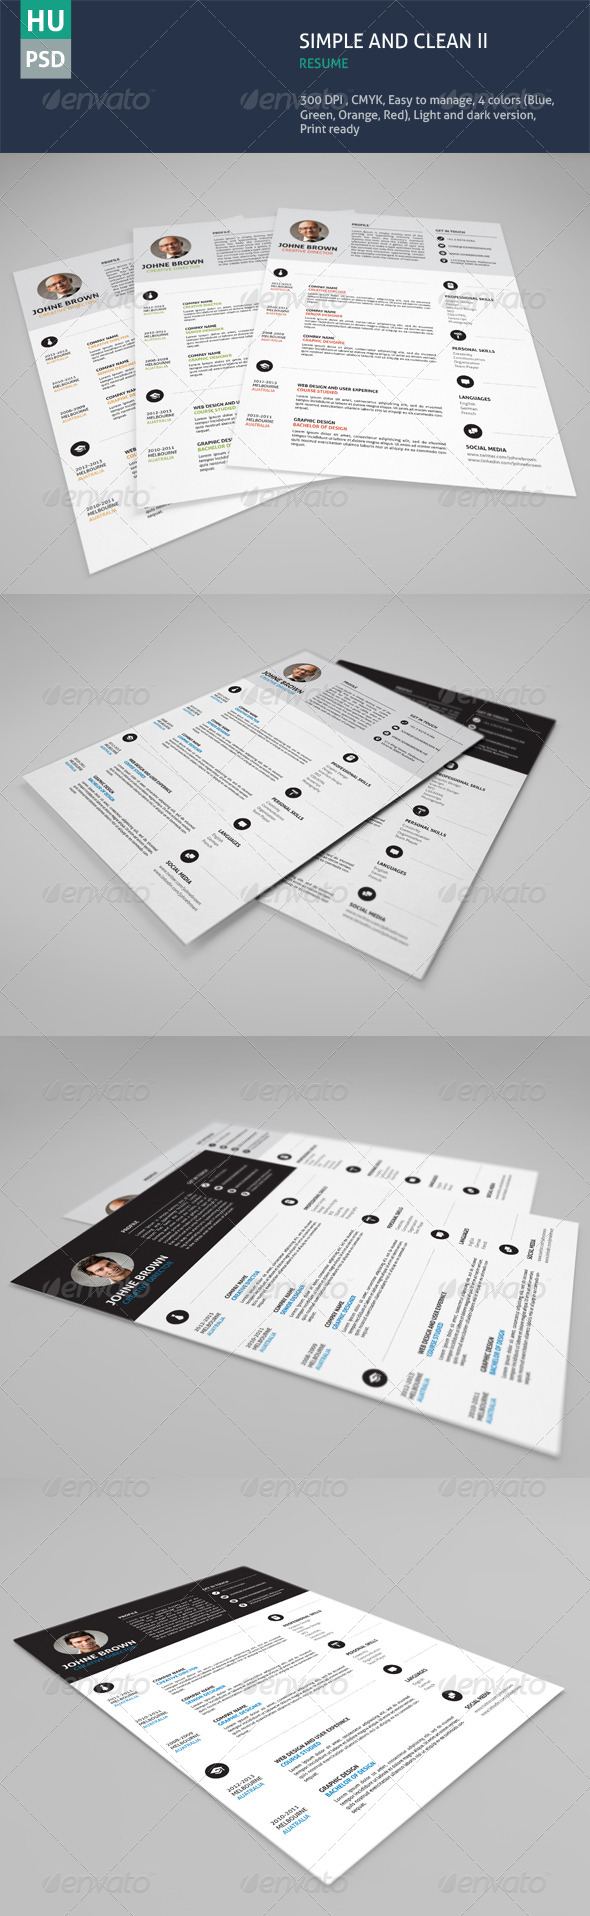 GraphicRiver Simple & Clean Resume Vol.02 6173117